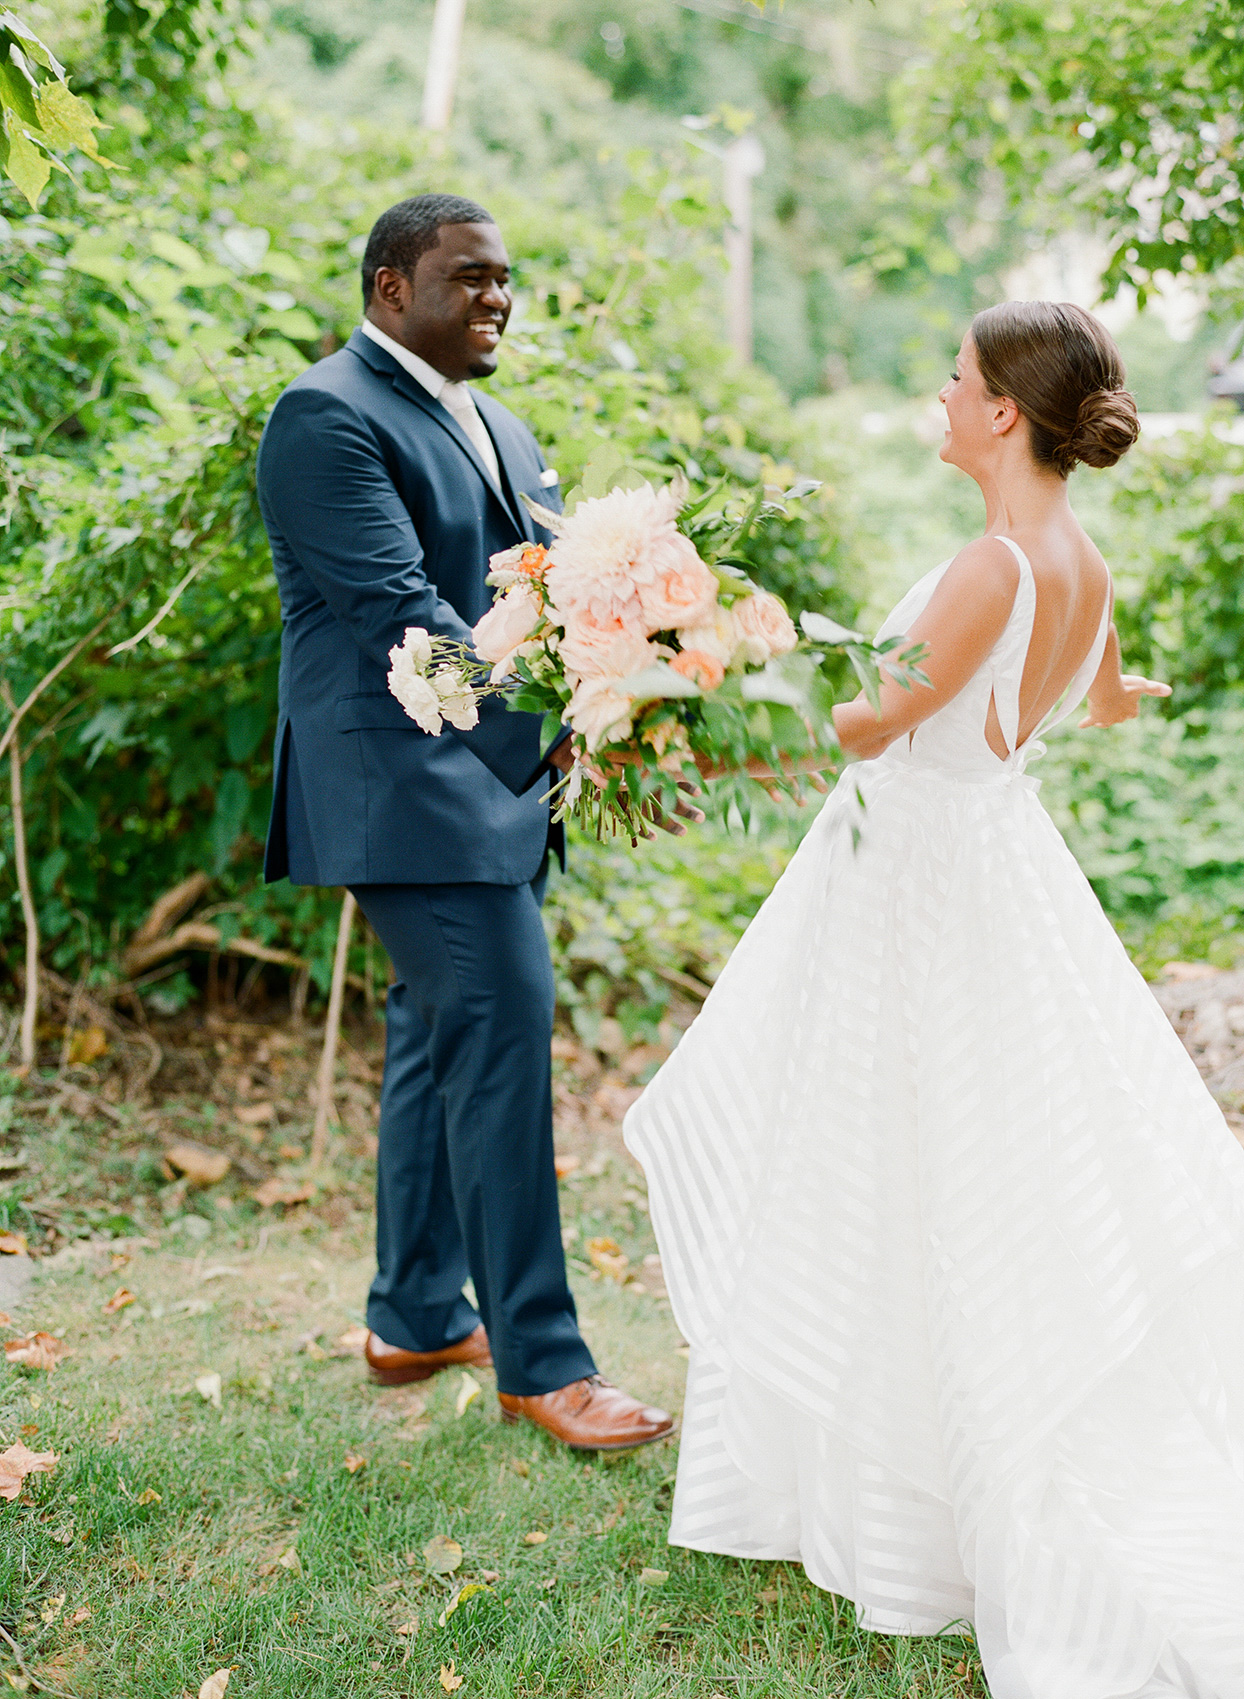 shelby david wedding first look outdoors with flowers